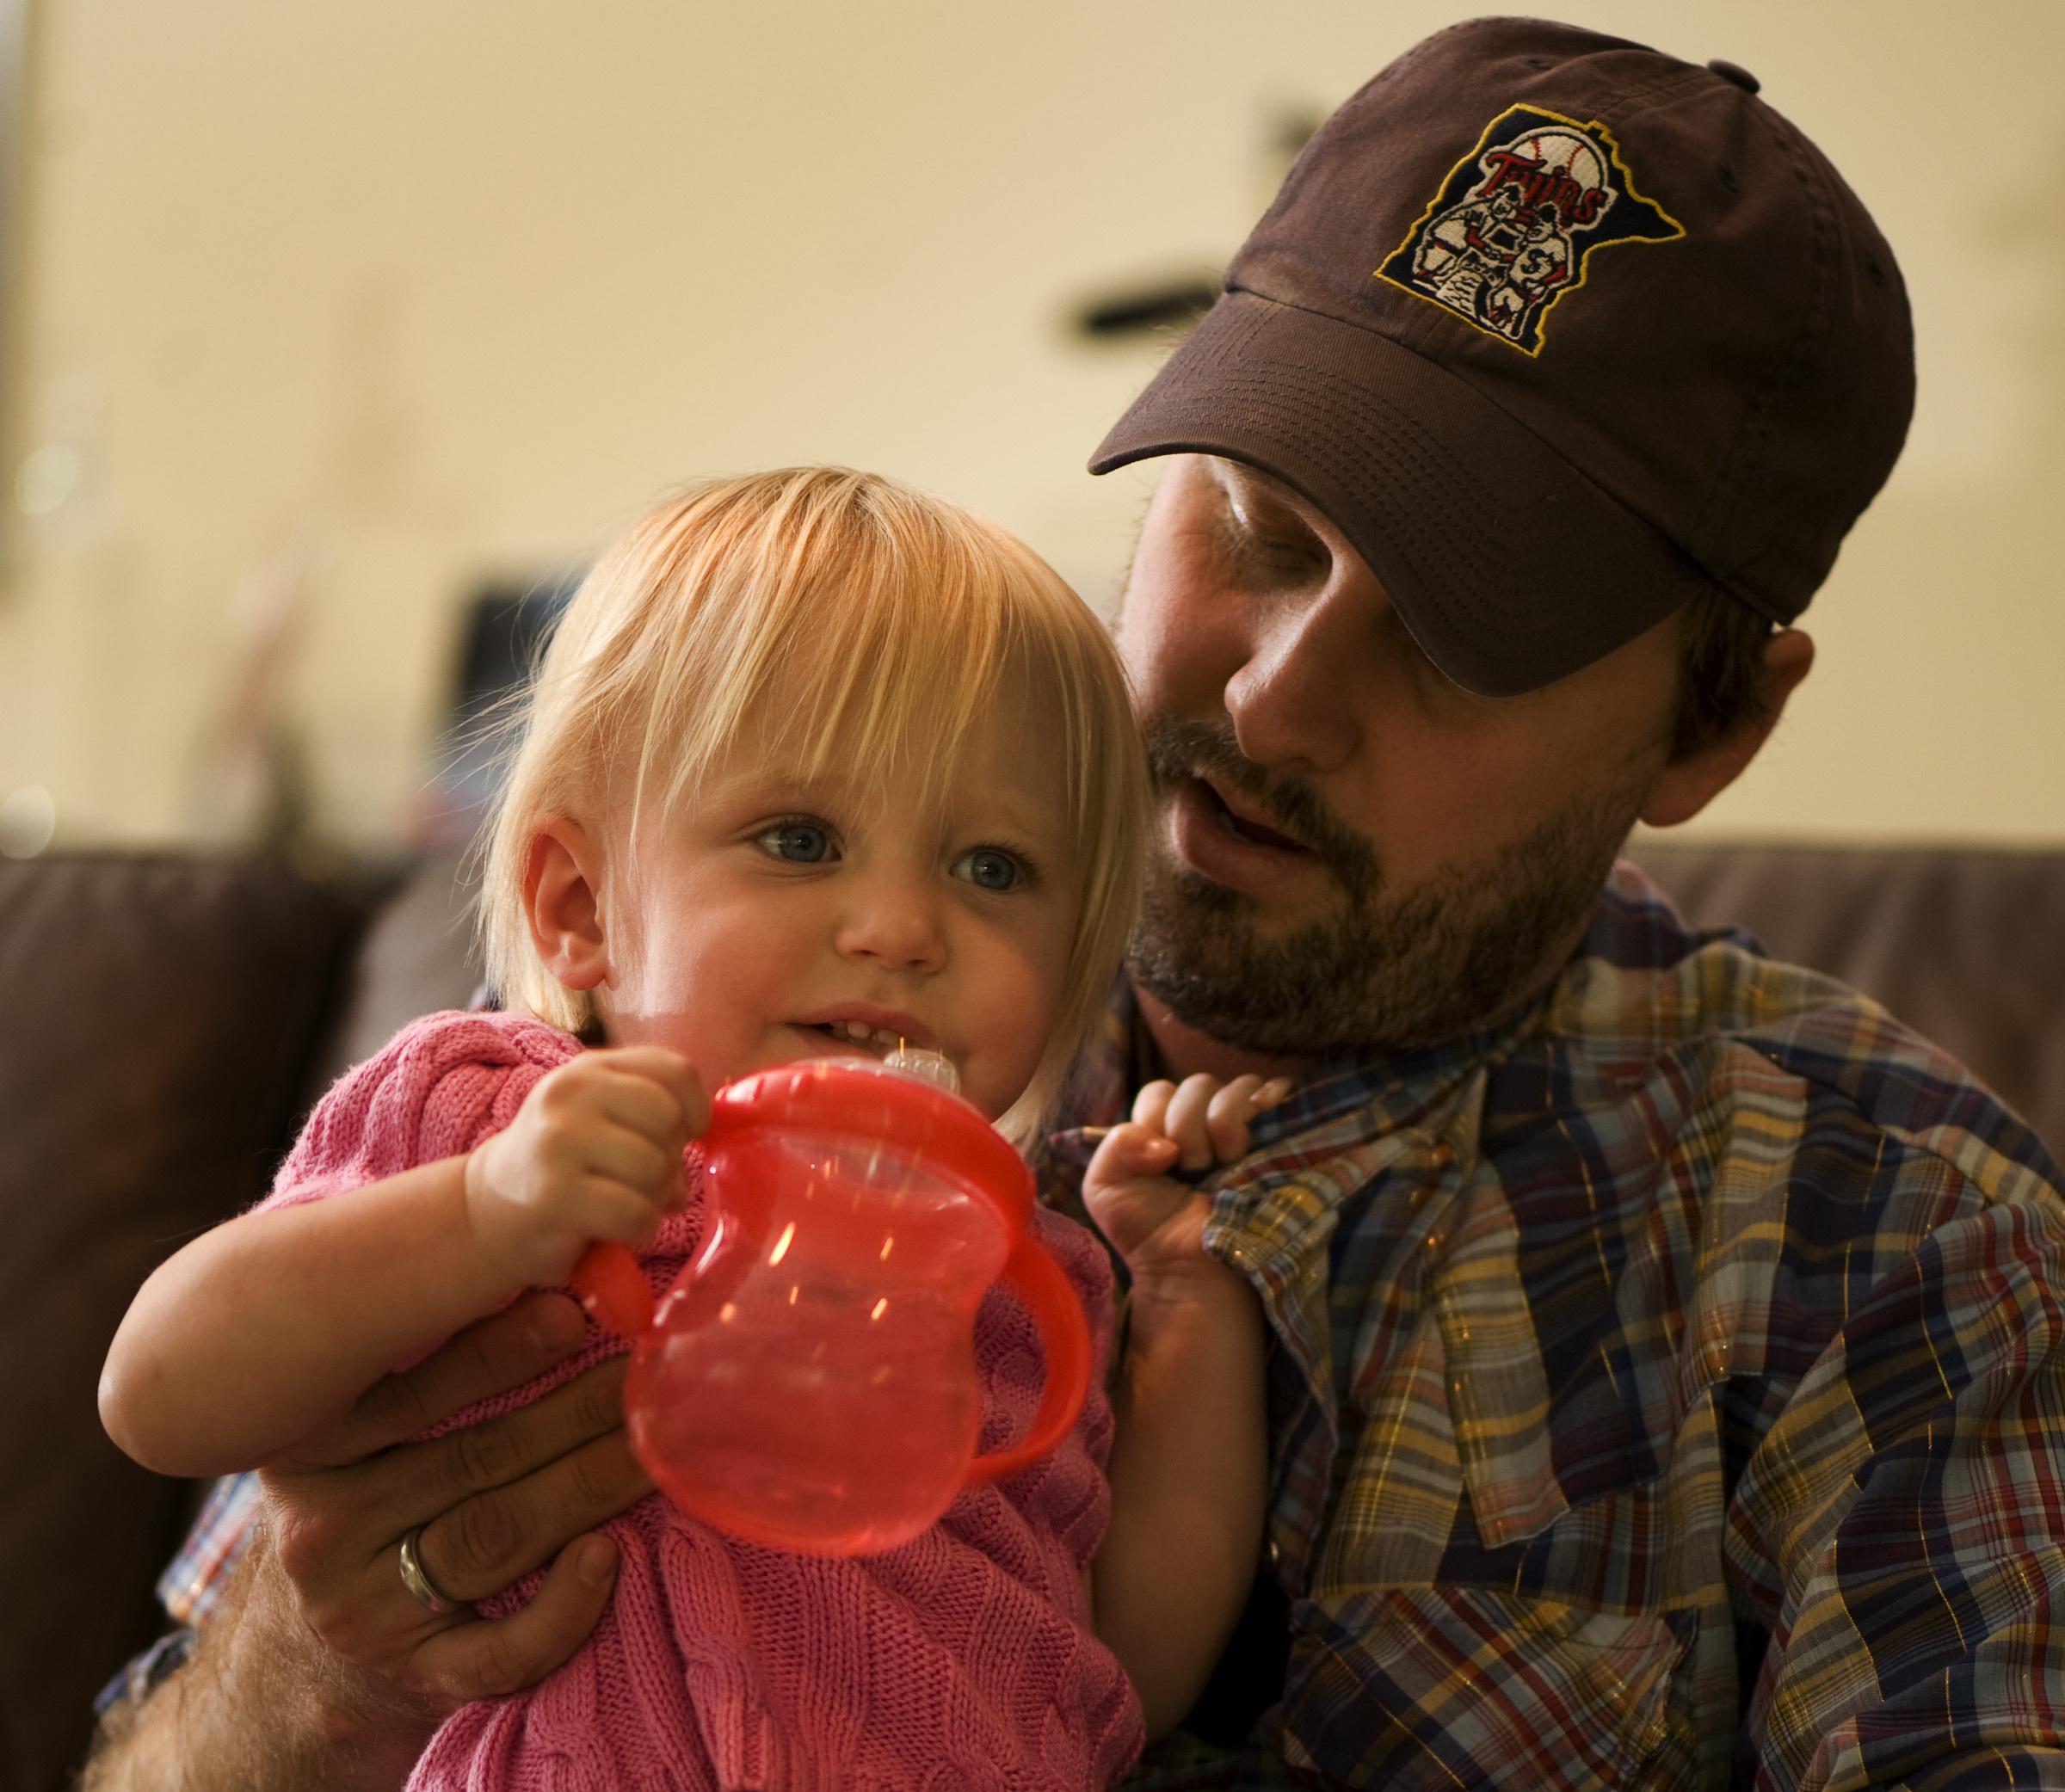 Matt Logelin with his 18 month old daughter Maddy in 2009